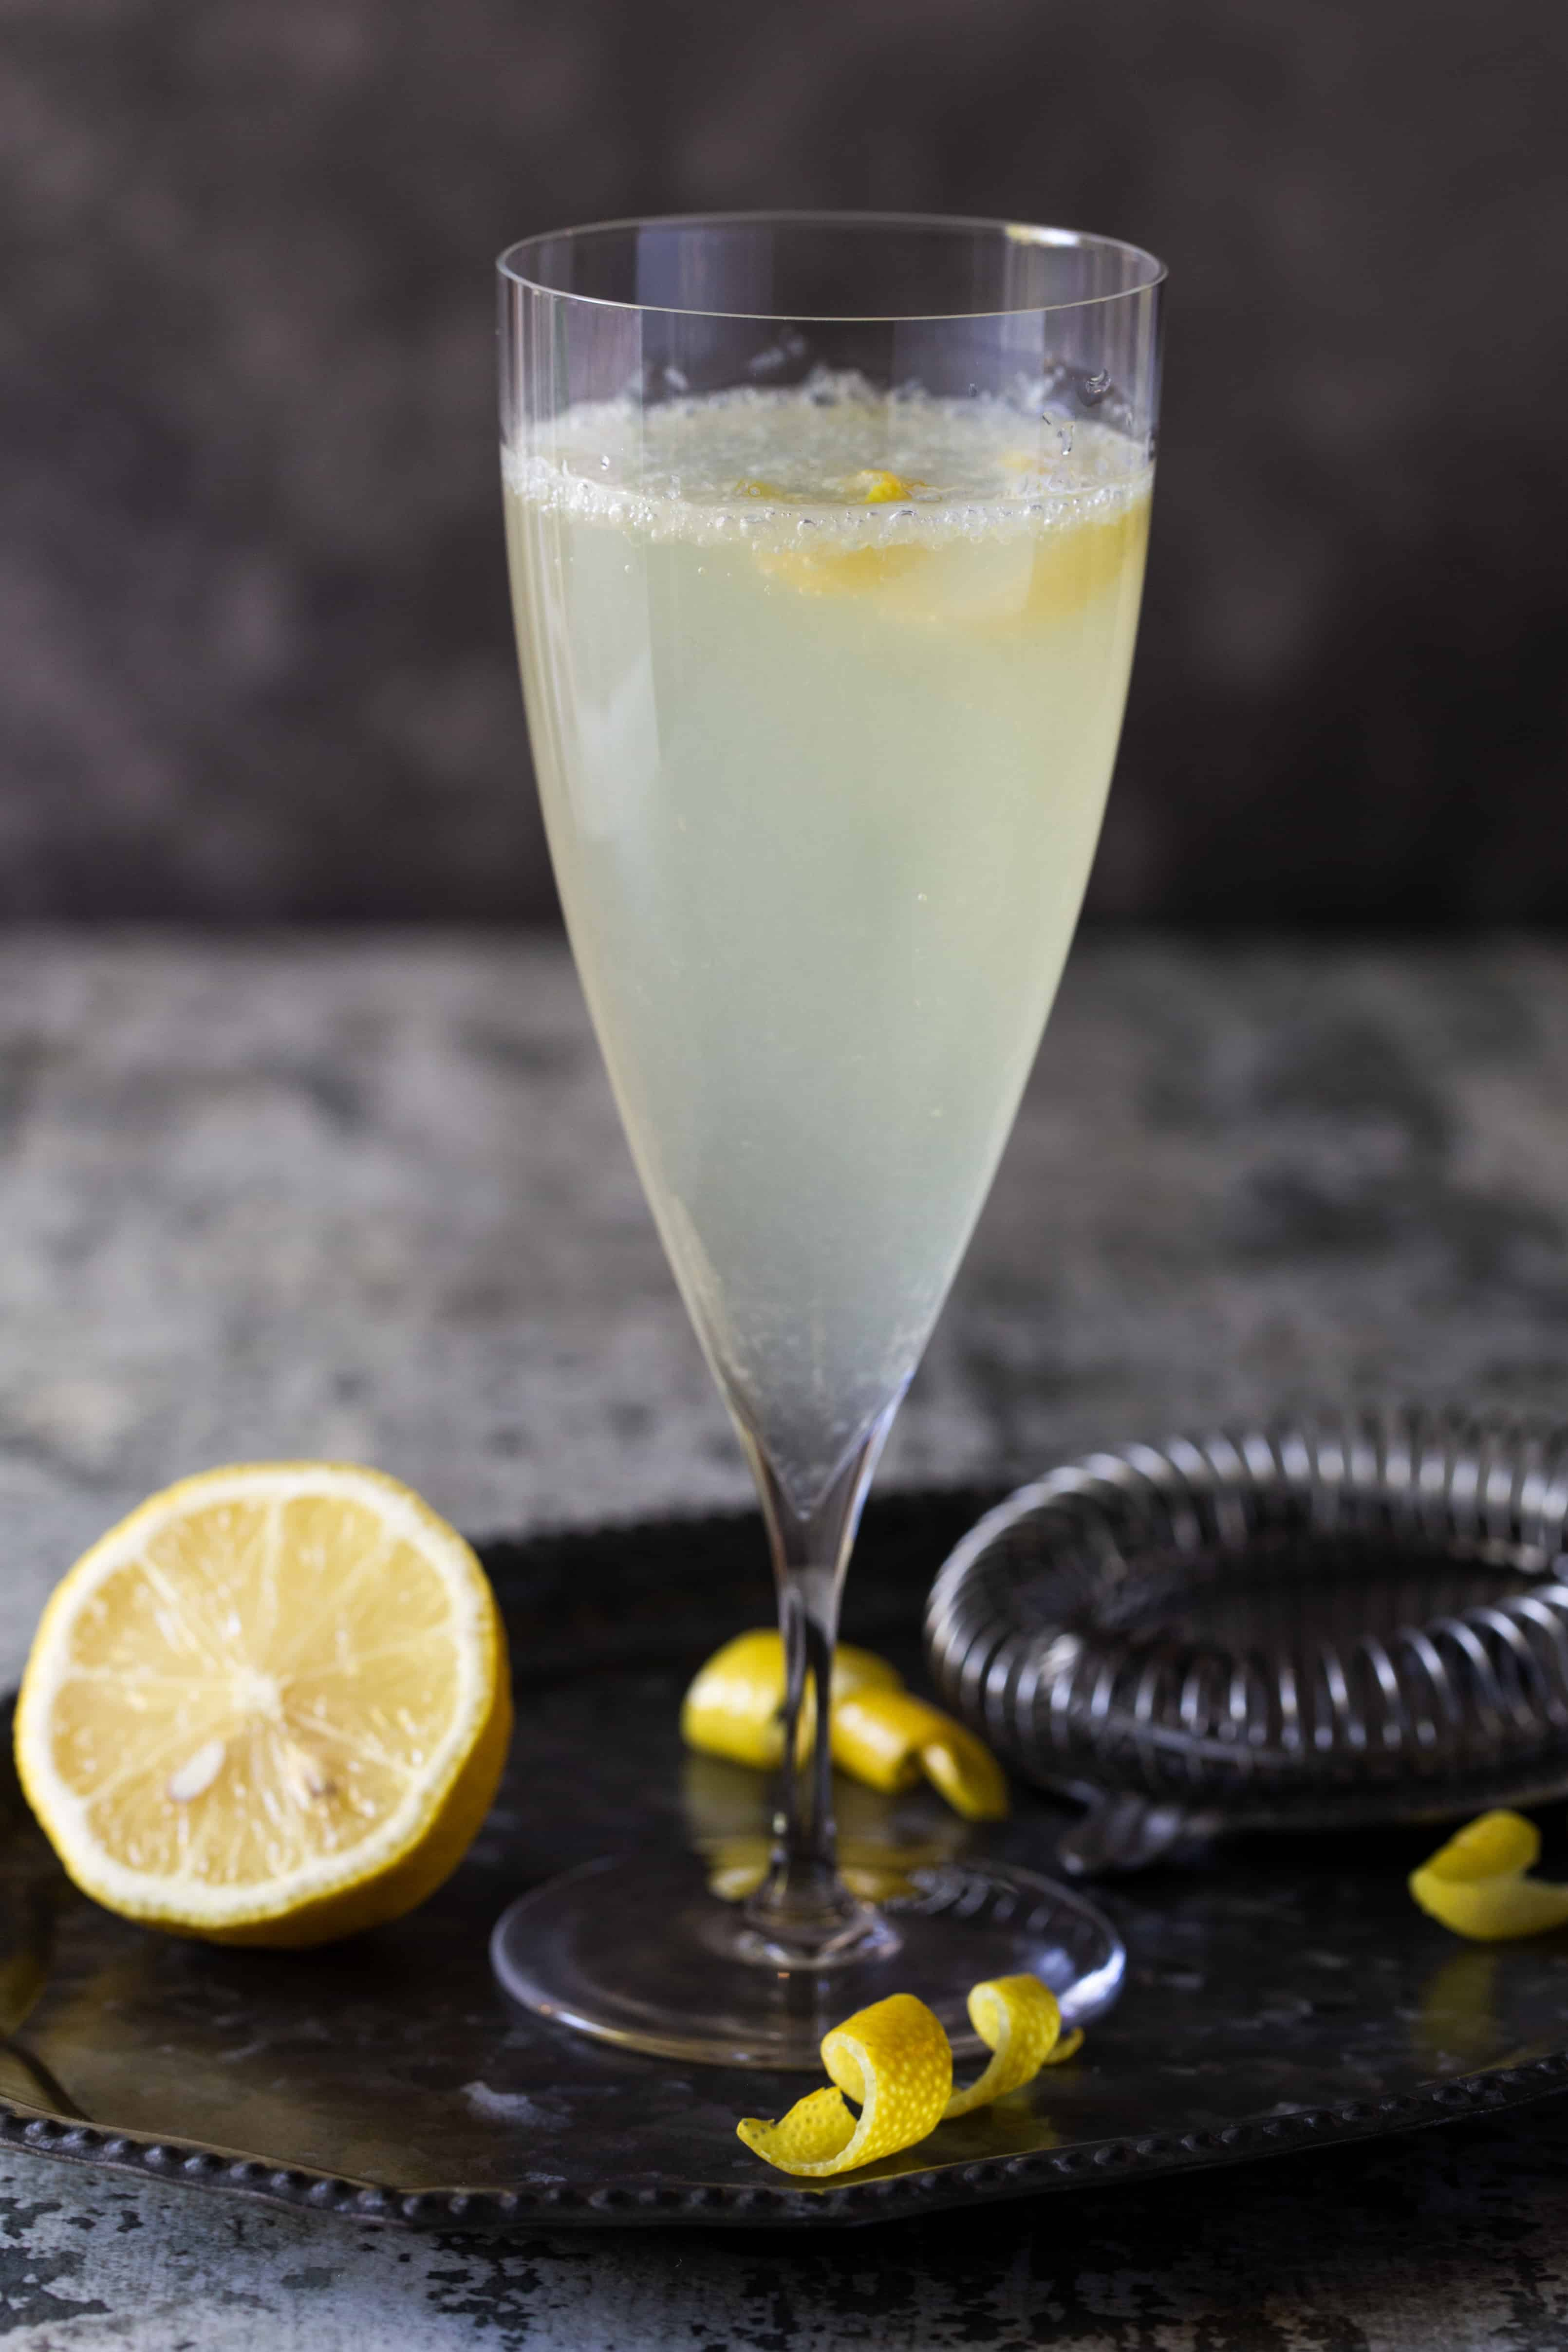 Single Elderflower French 75 cocktail in a tall flute garnished with a lemon slice on a dark background.